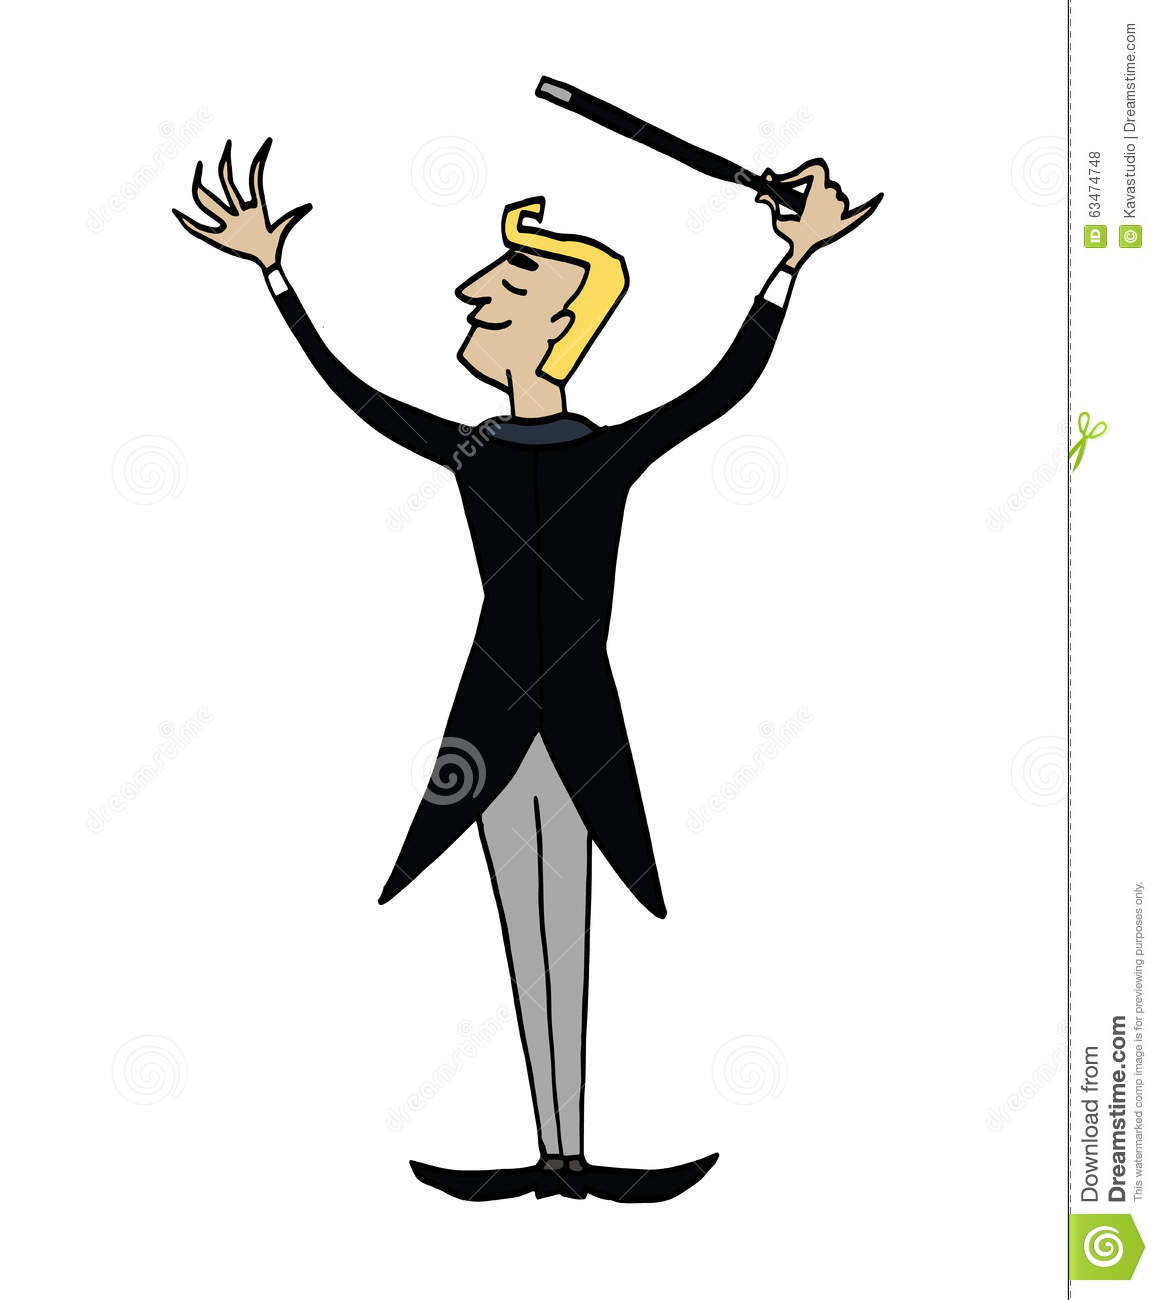 Cartoon Conductor. Back Of A Man Conducting An Orchestra. Stock.